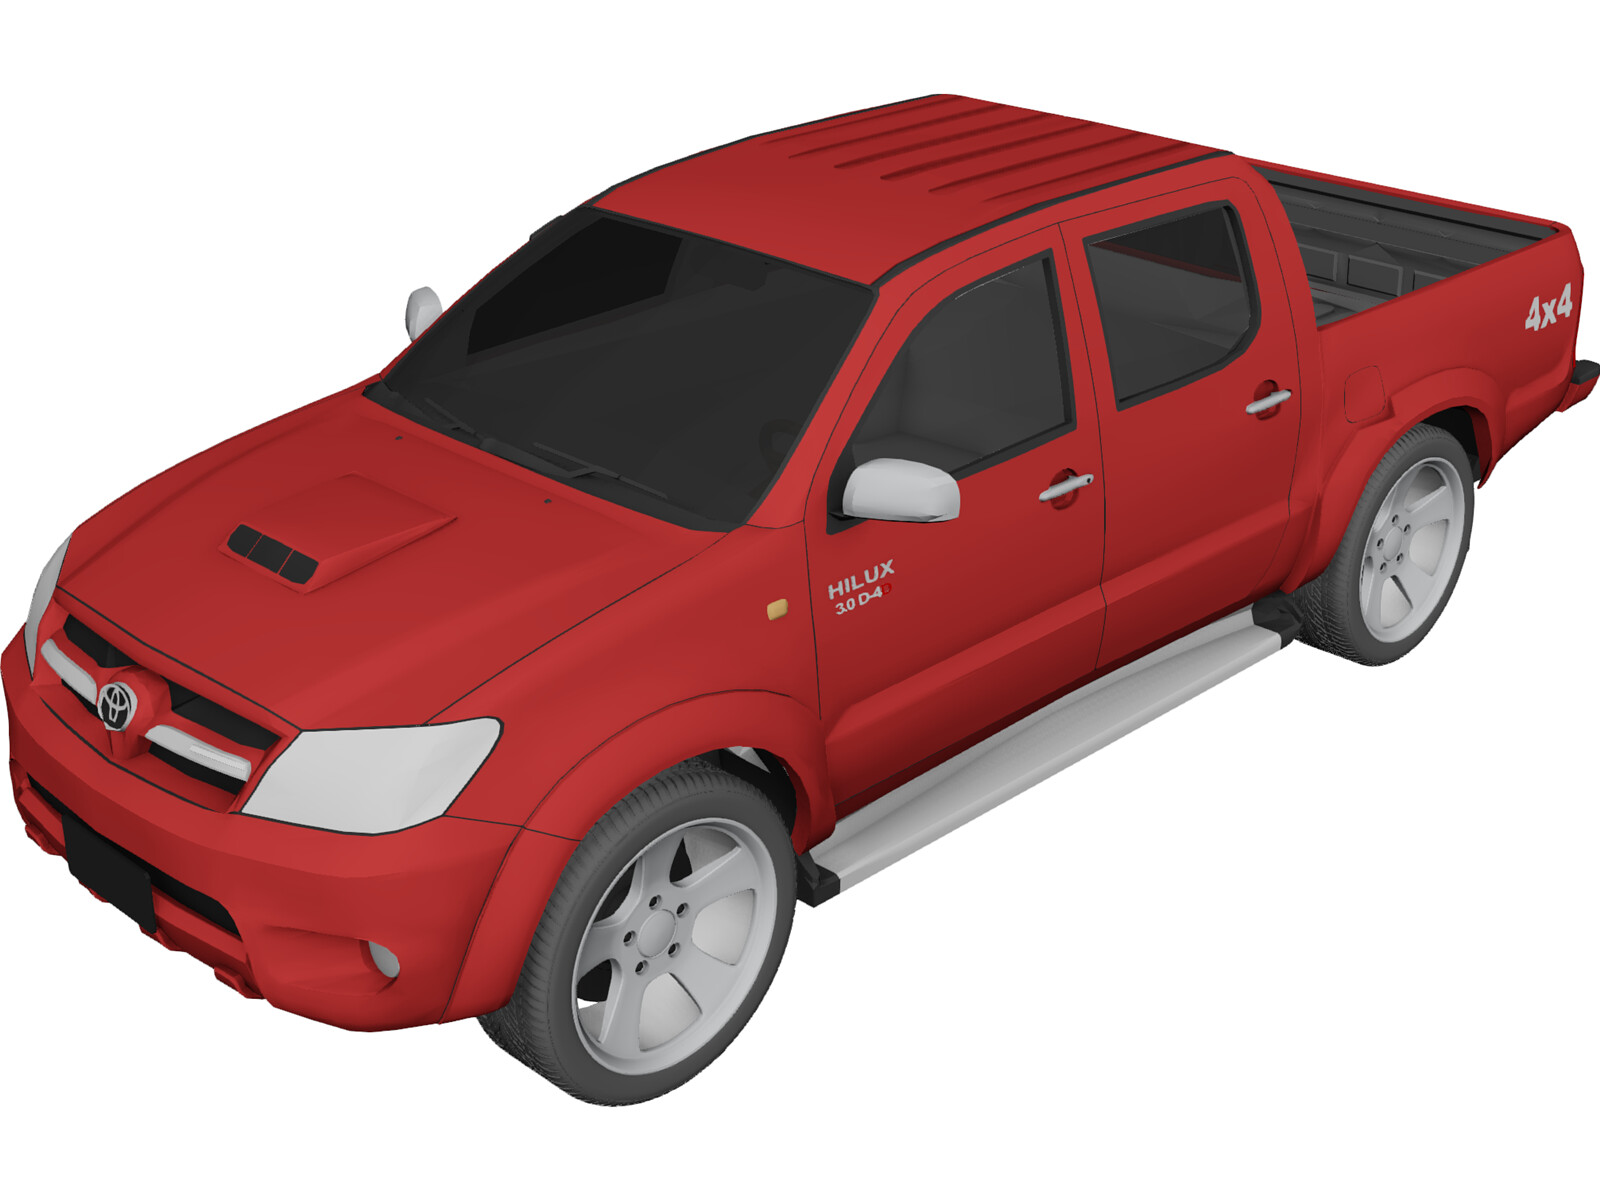 Toyota Tundra 2010 >> Toyota Hilux Crew Cab 3D Model - 3D CAD Browser